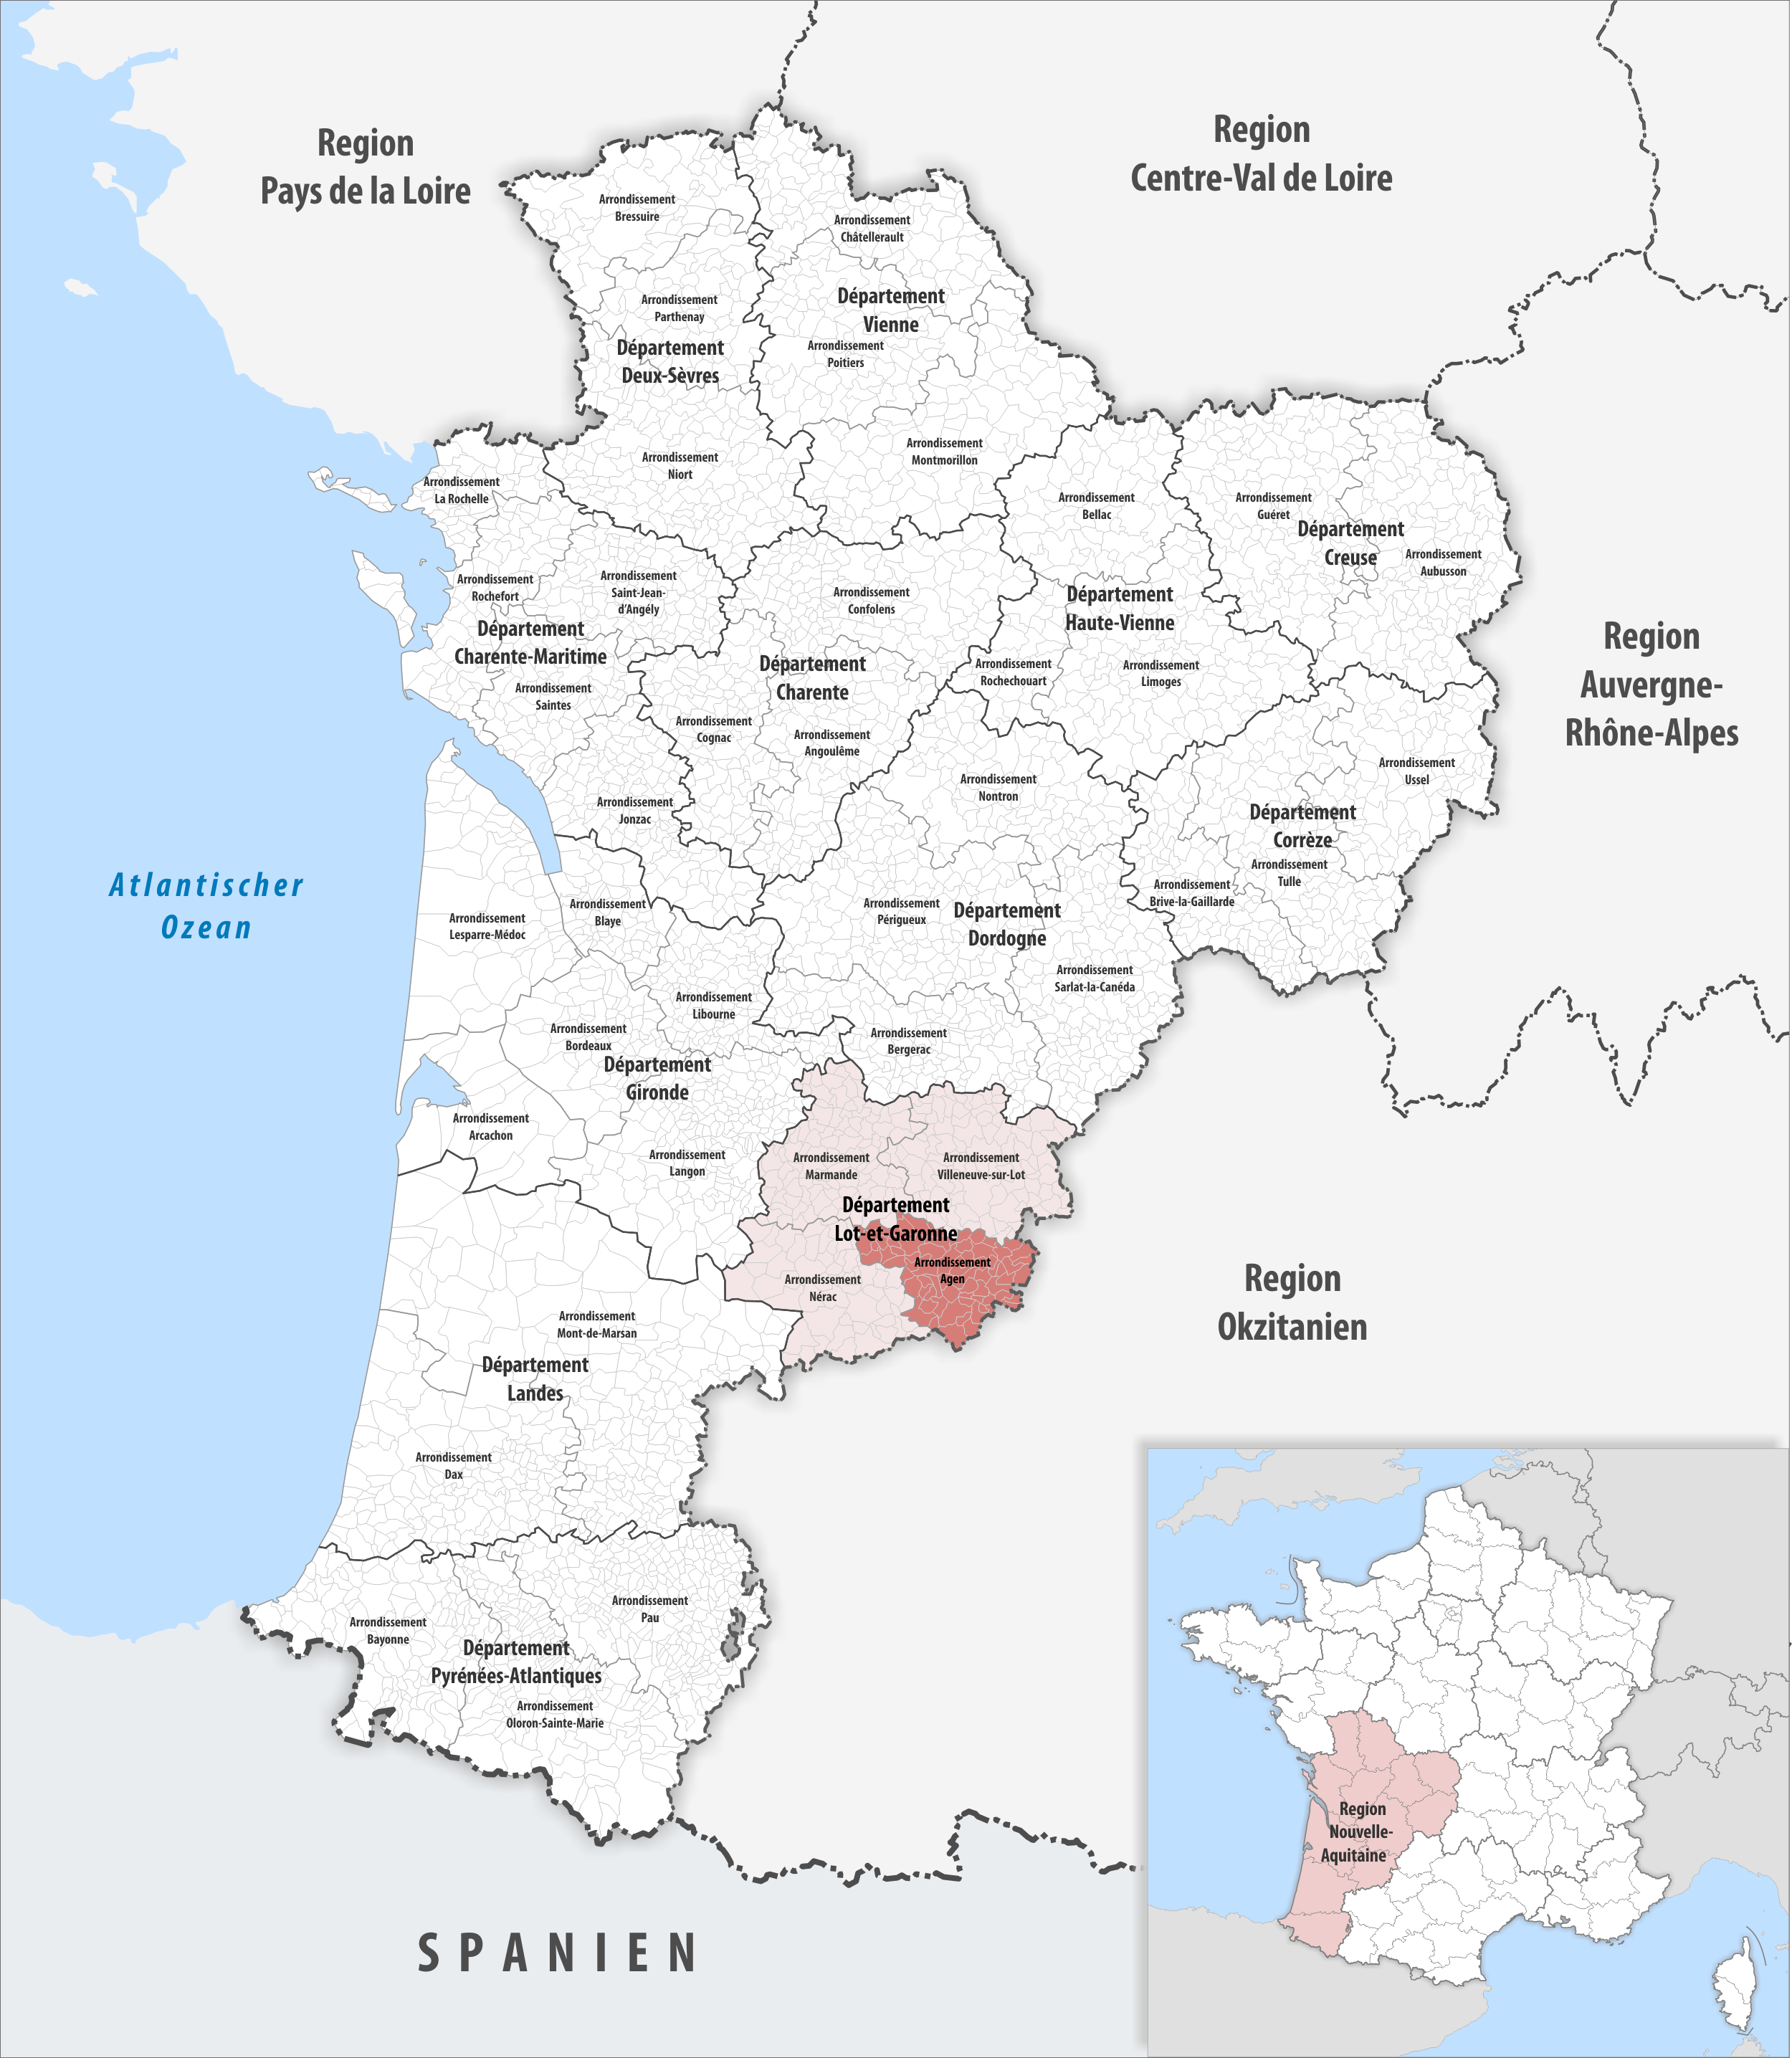 File:Locator map of Arrondissement Agen 2019.png